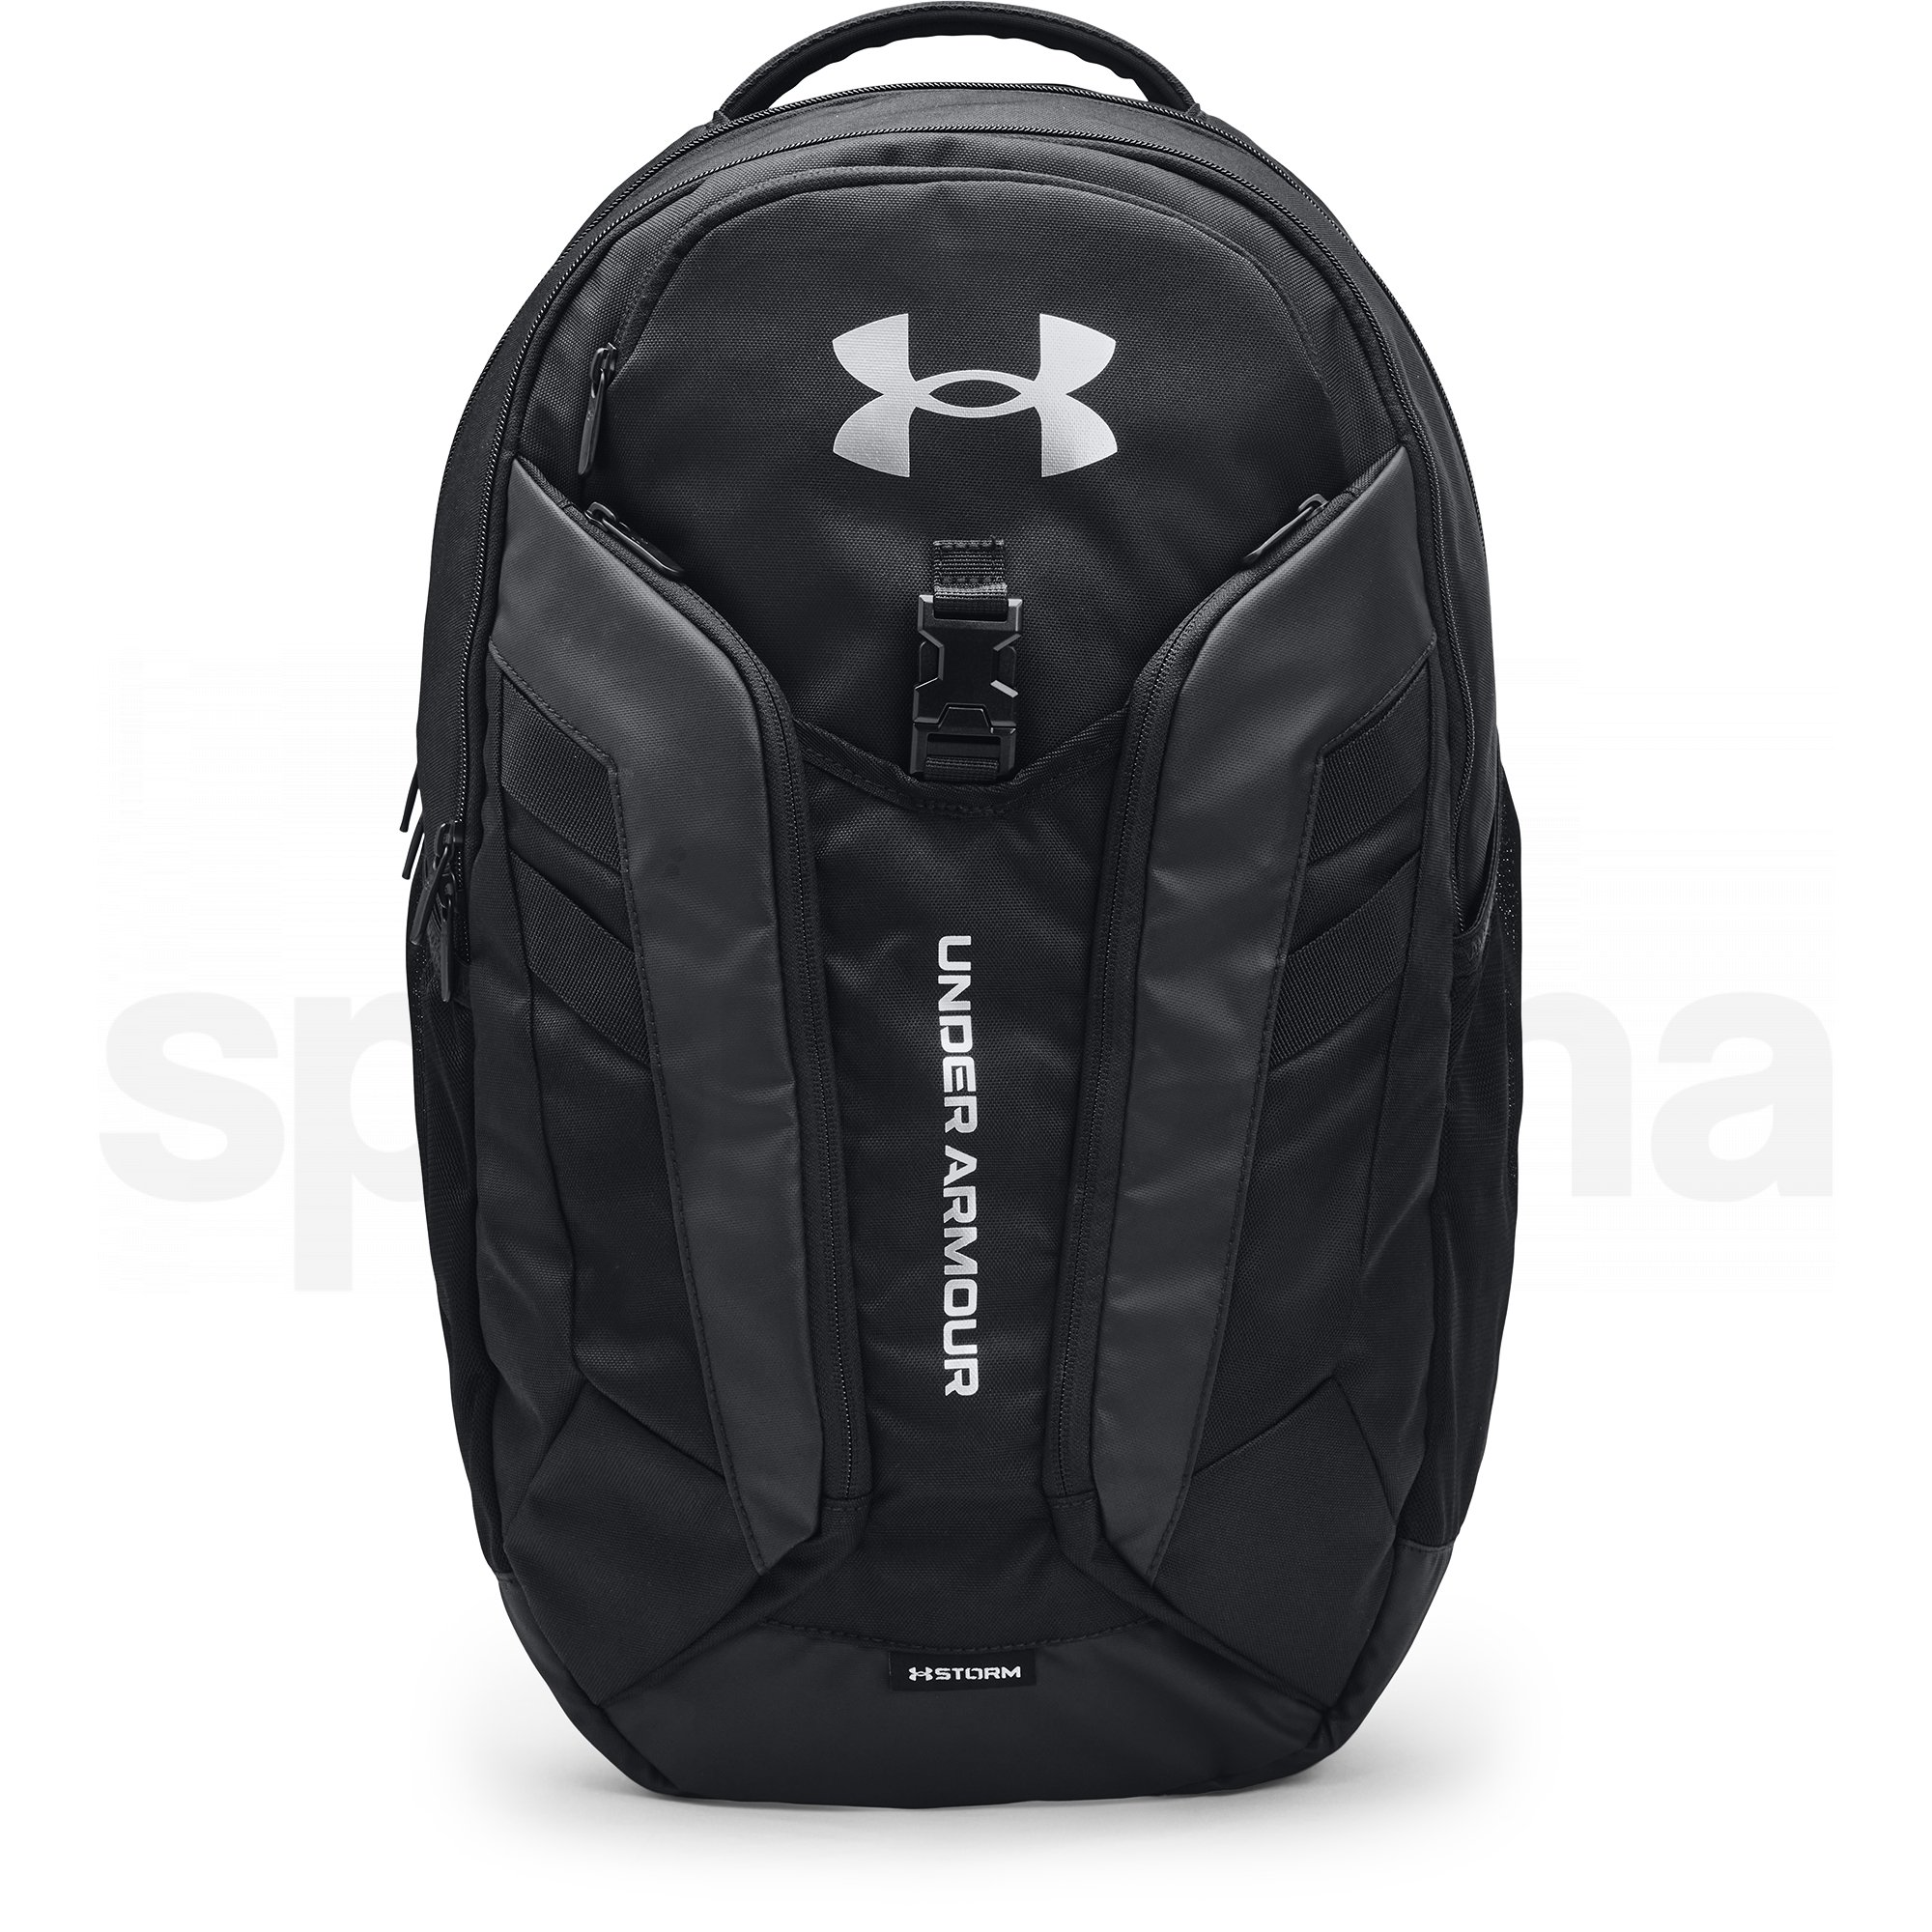 1367060-001_Under Armour Hustle Pro Backpack